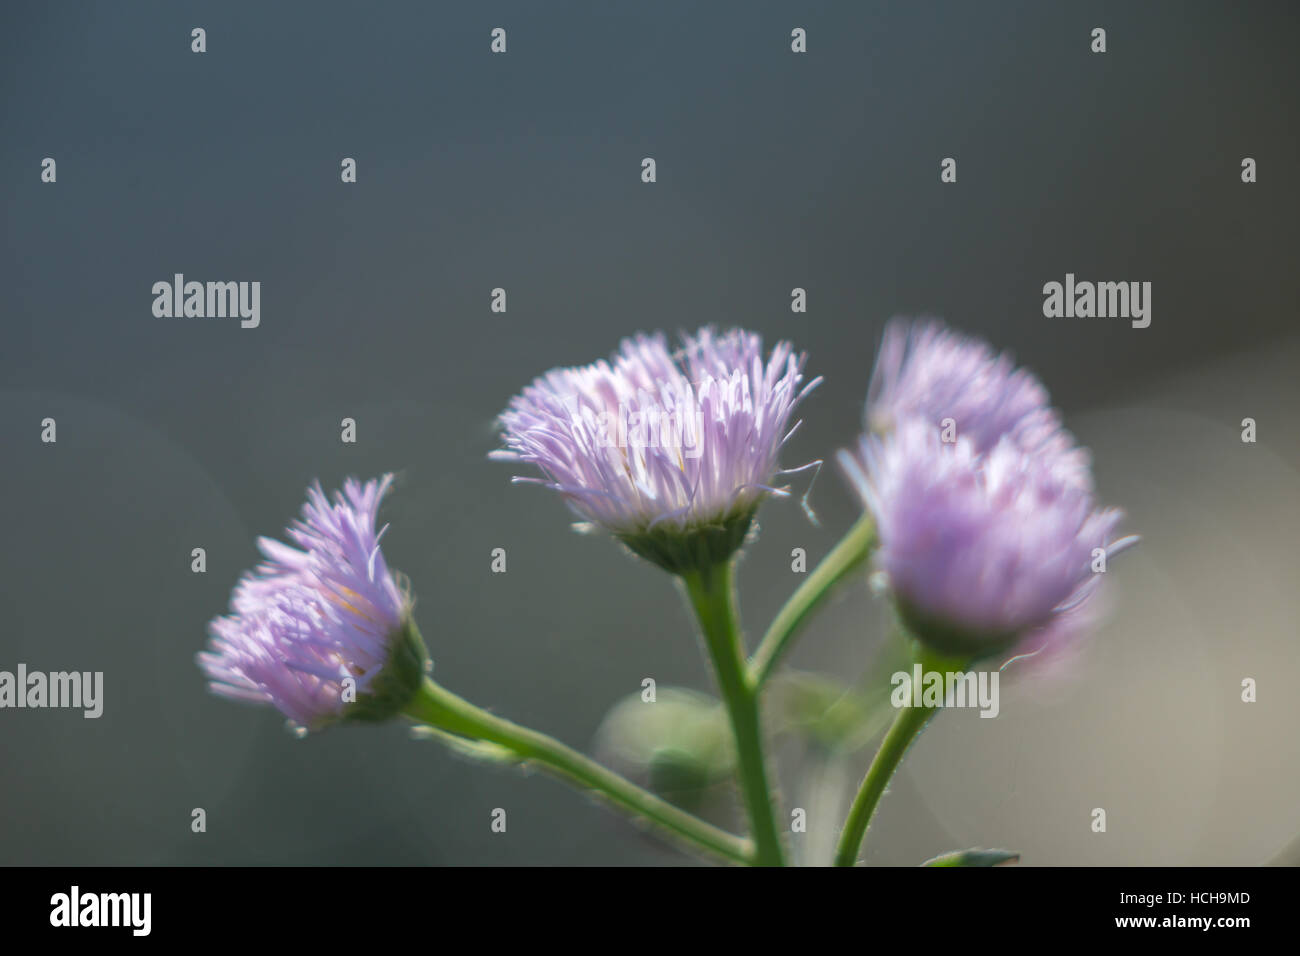 Cluster Small Purple Flowers Thin Stock Photos Cluster Small